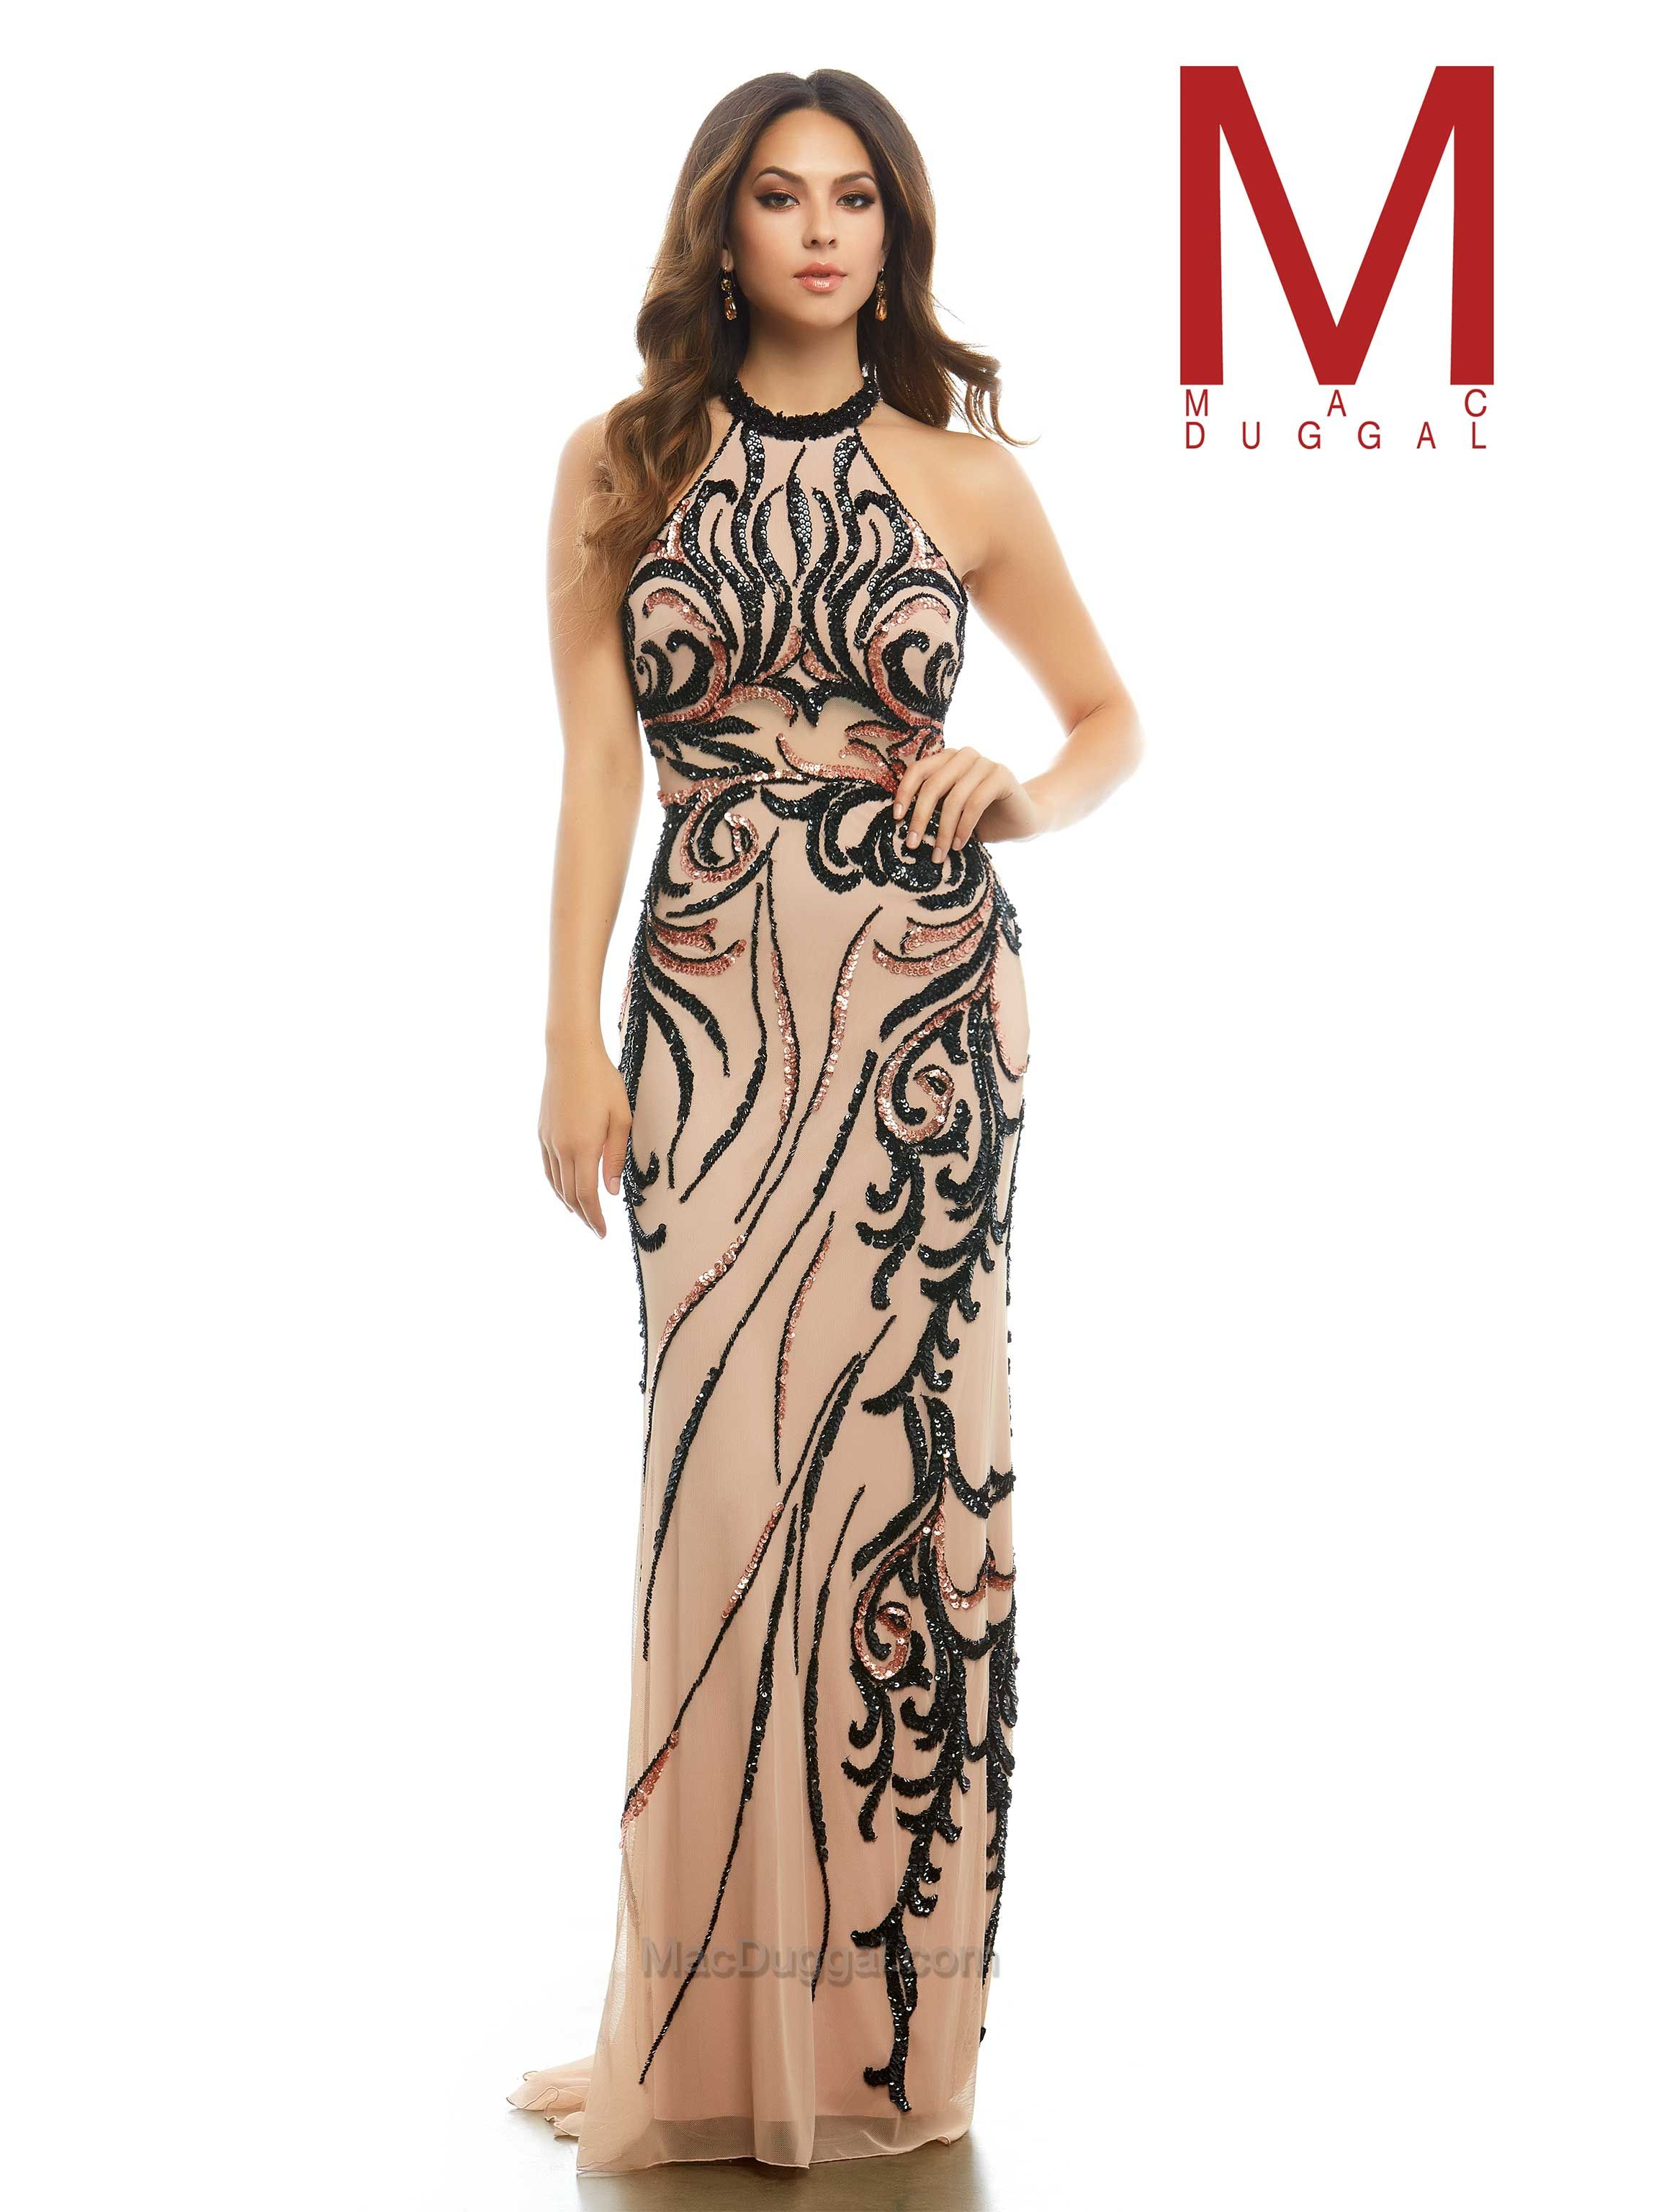 Style 1922 High neck, halter neck, black and nude, column style ...